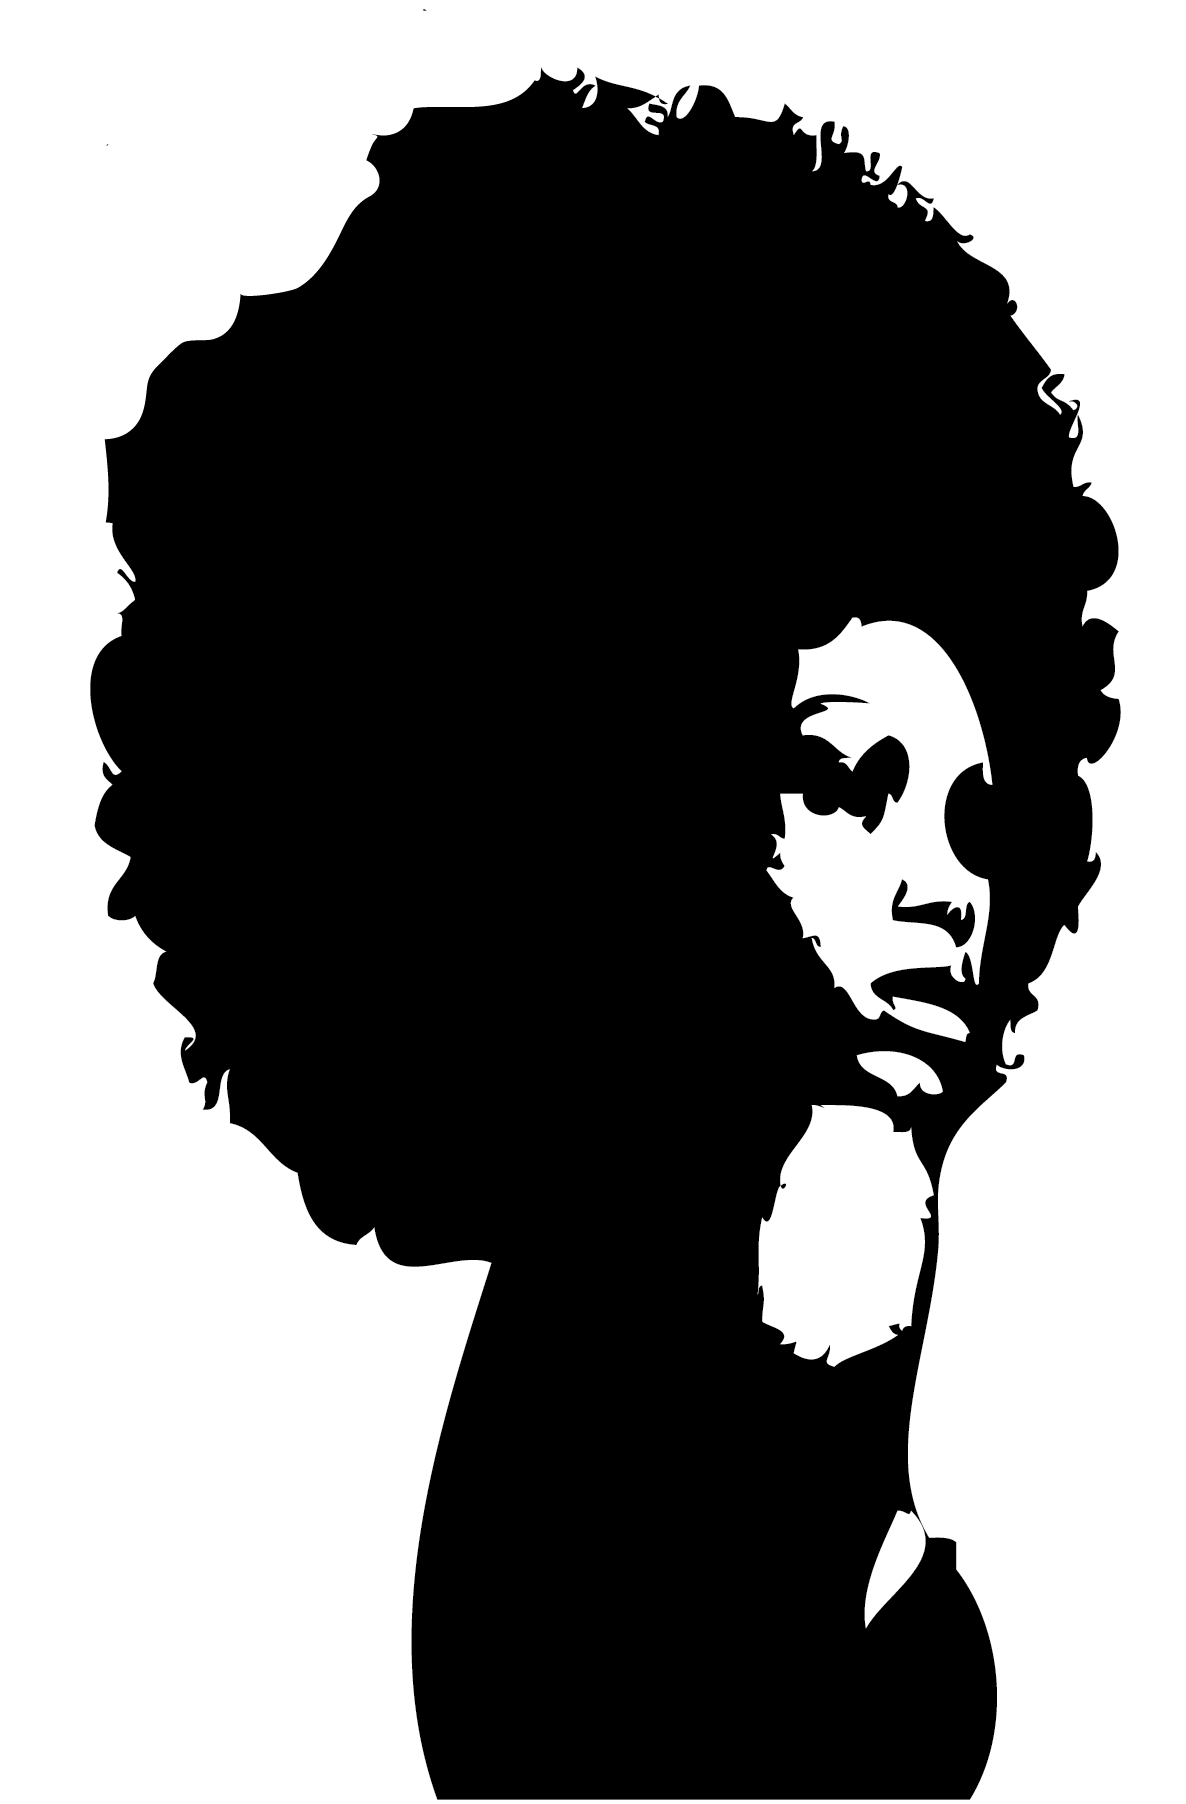 Black girl with afro clipart png free download Free Afro Lady Cliparts, Download Free Clip Art, Free Clip Art on ... png free download